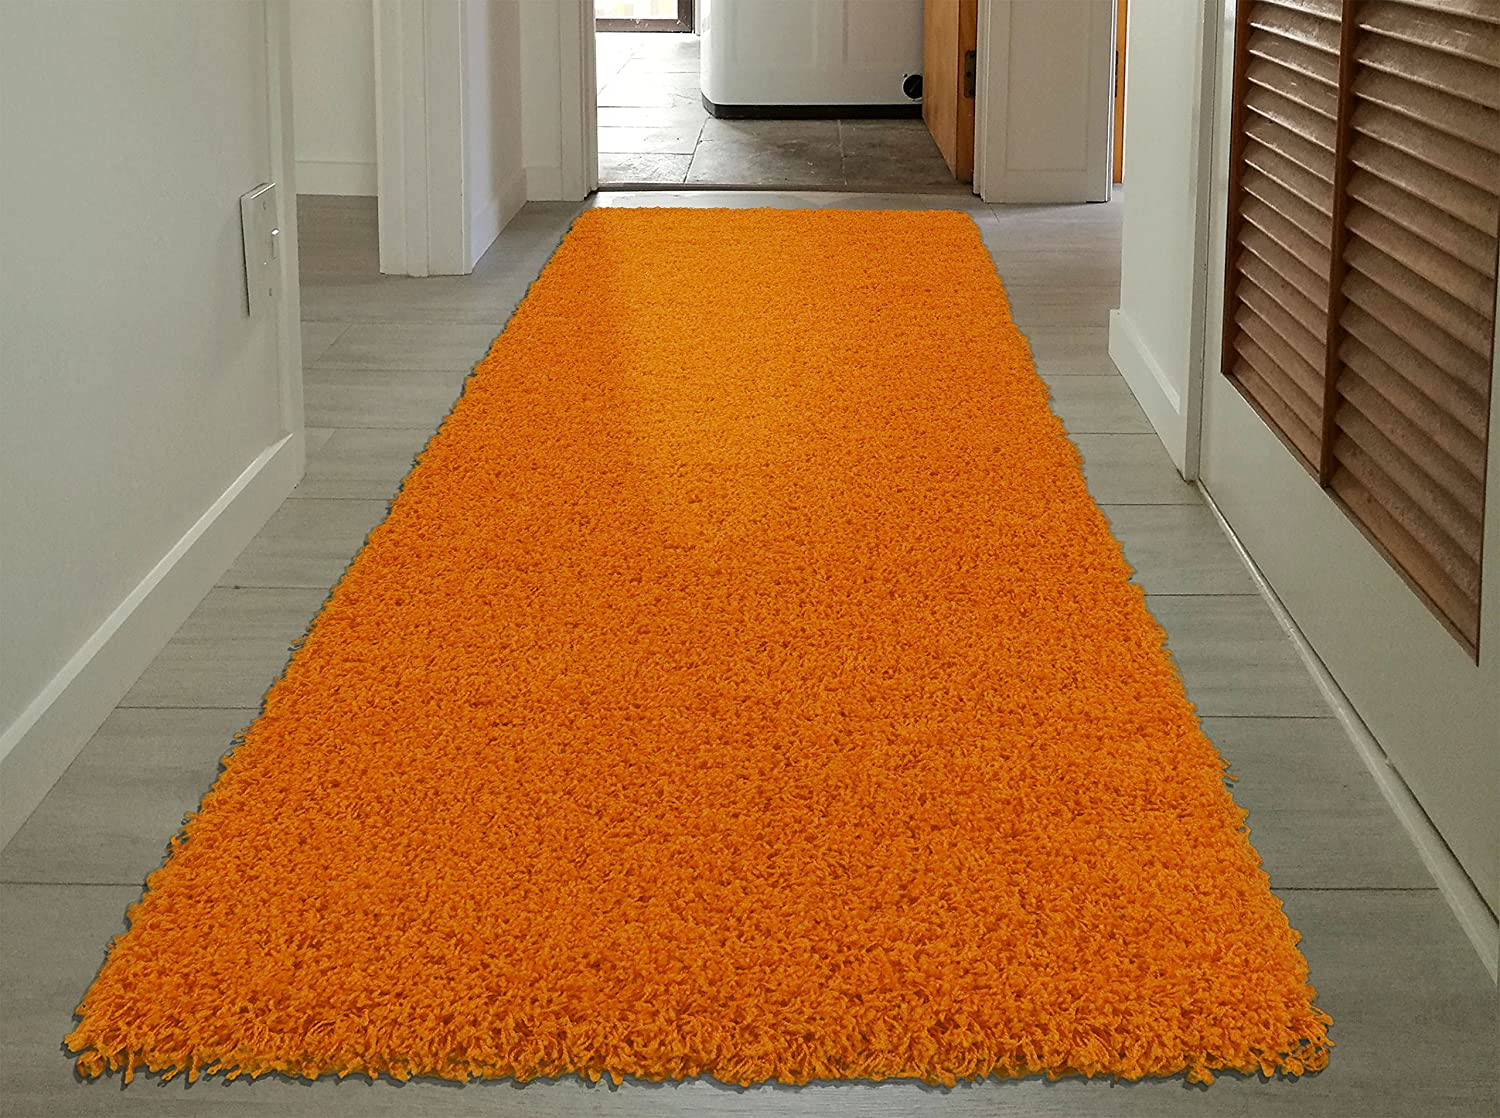 Sweet Home Stores Cozy Shag Collection Orange Solid Shag Rug (2'7 X 8'0) Contemporary Living and Bedroom Soft Shaggy Runner Rug Sweethome Stores COZY2761-3X8